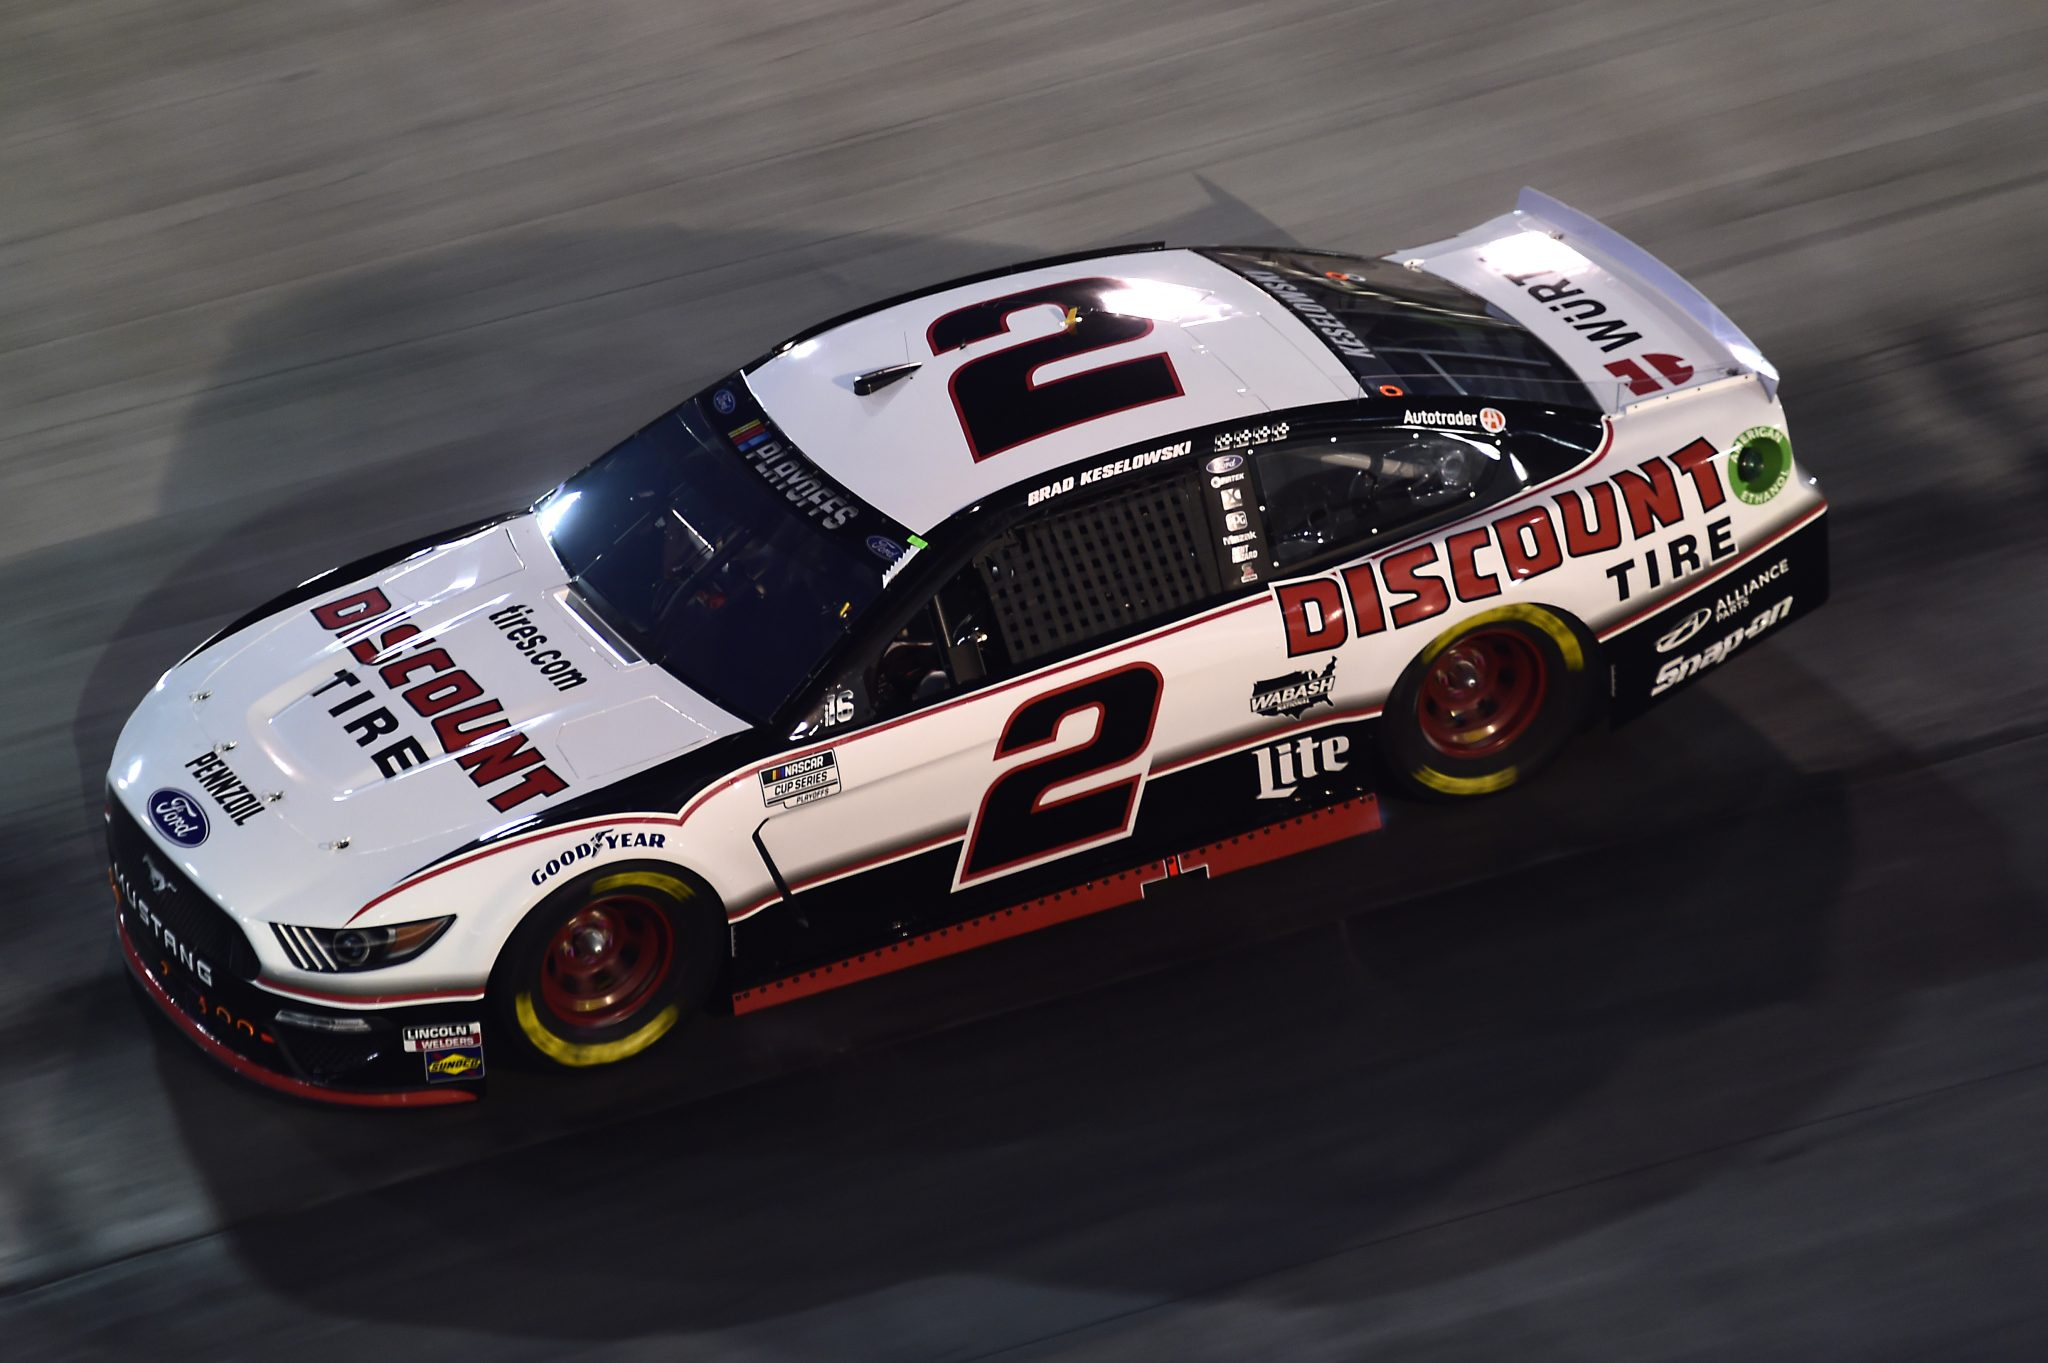 BRISTOL, TENNESSEE - SEPTEMBER 19: Brad Keselowski, driver of the #2 Discount Tire Ford, drives during the NASCAR Cup Series Bass Pro Shops Night Race at Bristol Motor Speedway on September 19, 2020 in Bristol, Tennessee. (Photo by Jared C. Tilton/Getty Images) | Getty Images